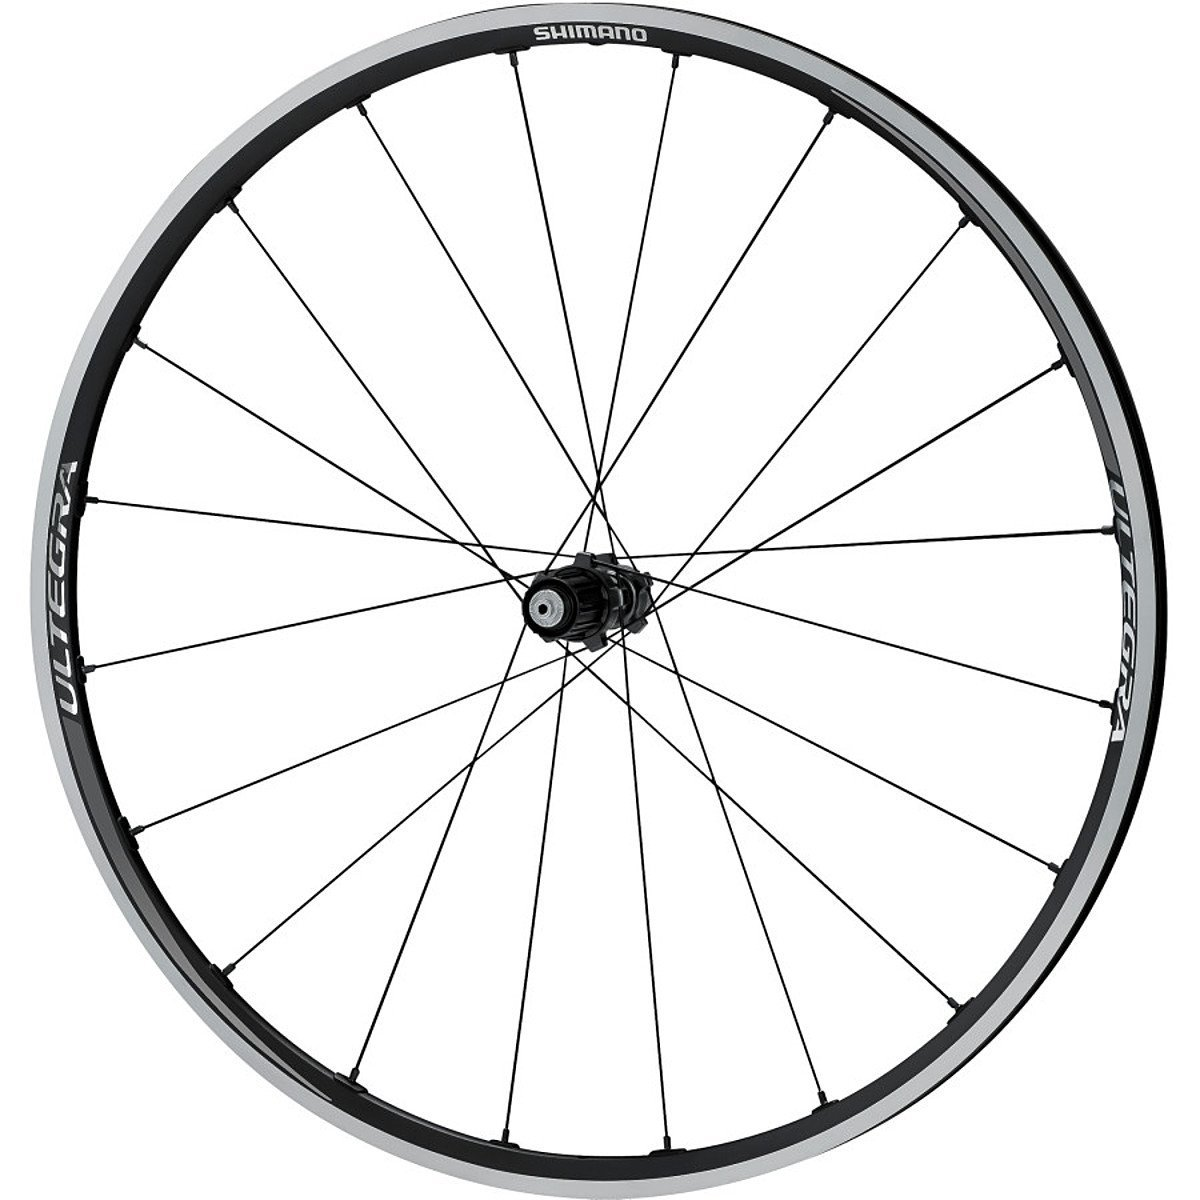 Shimano Ultegra Bike Clincher Road Wheelset with A Wide Flange For Increased Stability – 23mm Wheel Depth